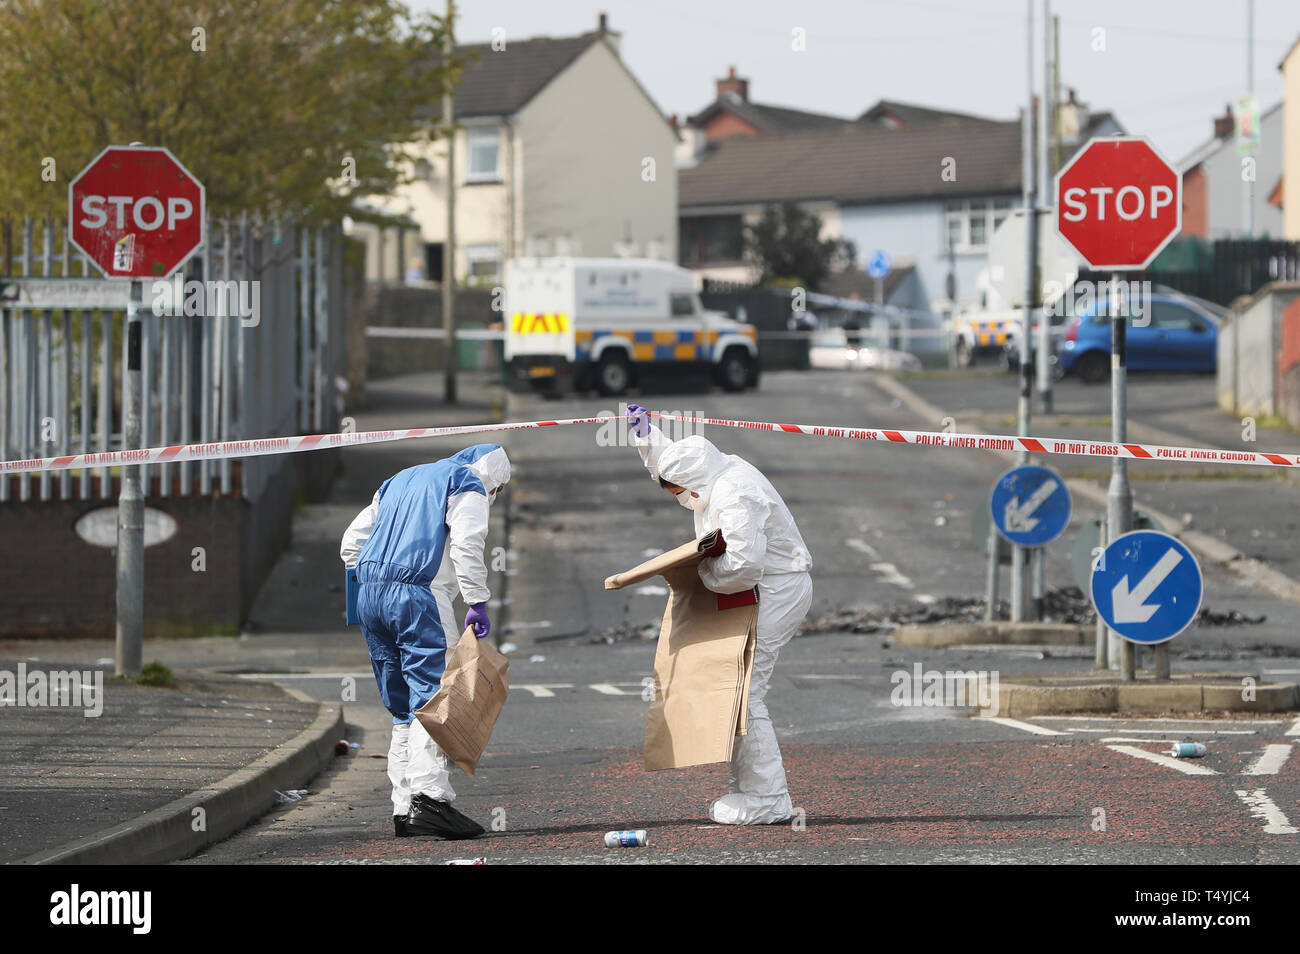 "Police forensic officers at the scene in Londonderry, Northern Ireland, where 29-year-old journalist Lyra McKee was shot and killed when guns were fired and petrol bombs were thrown in what police are treating as a ""terrorist incident"". Stock Photo"